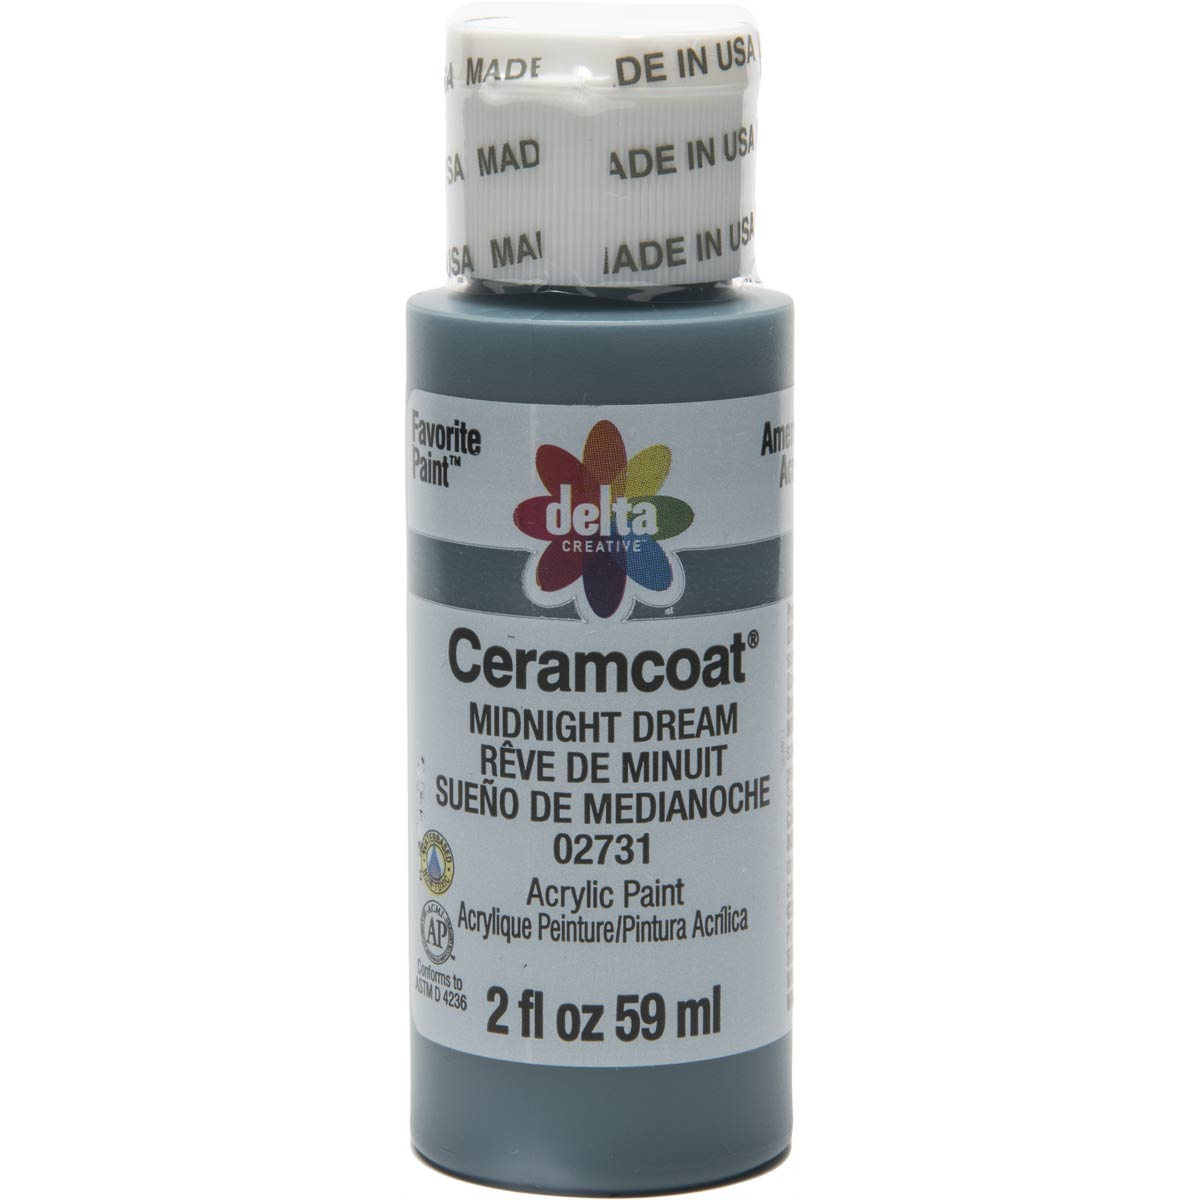 Delta Ceramcoat ® Acrylic Paint - Midnight Dream, 2 oz. - 02731